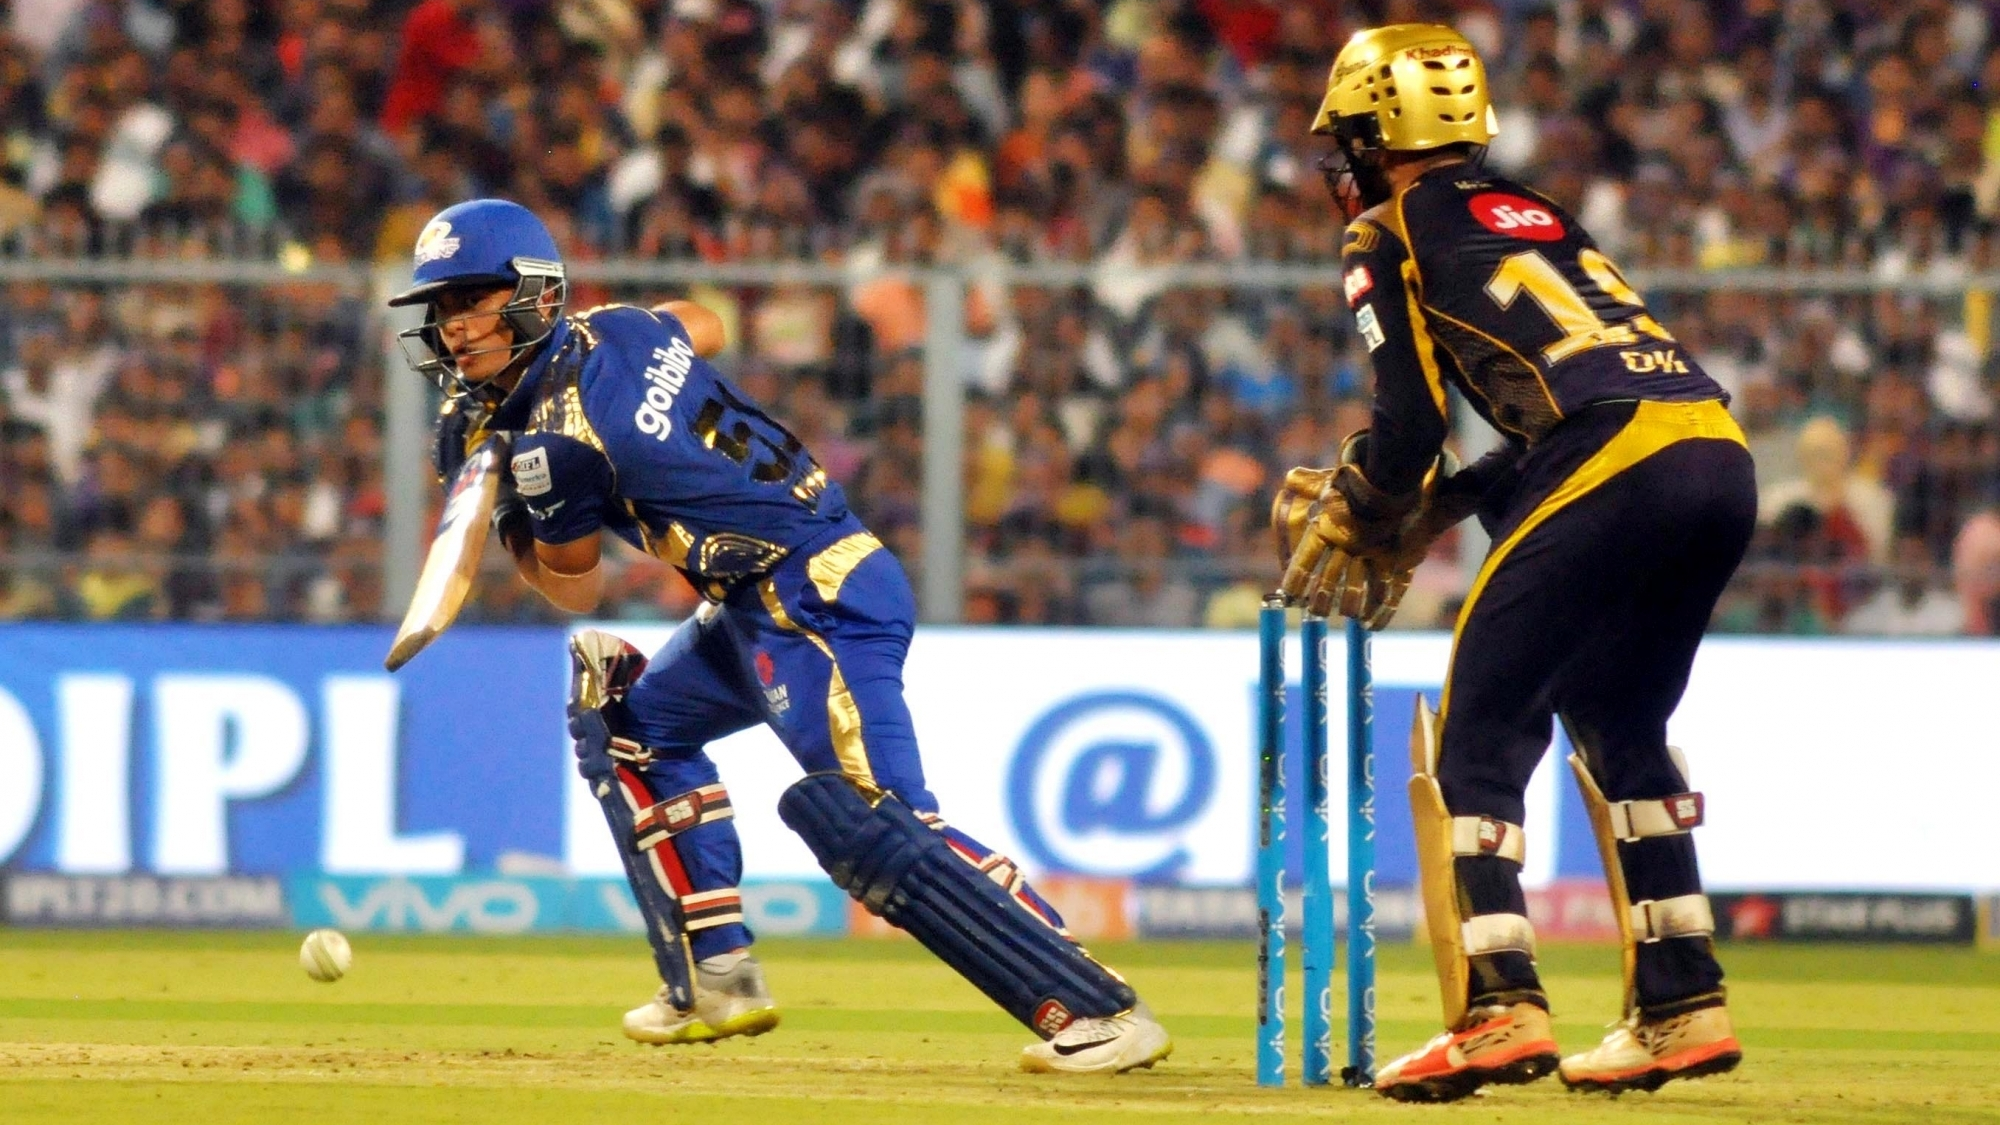 IPL 2018: 'Watch the ball and smack it' was Ishan Kishan's motto against KKR